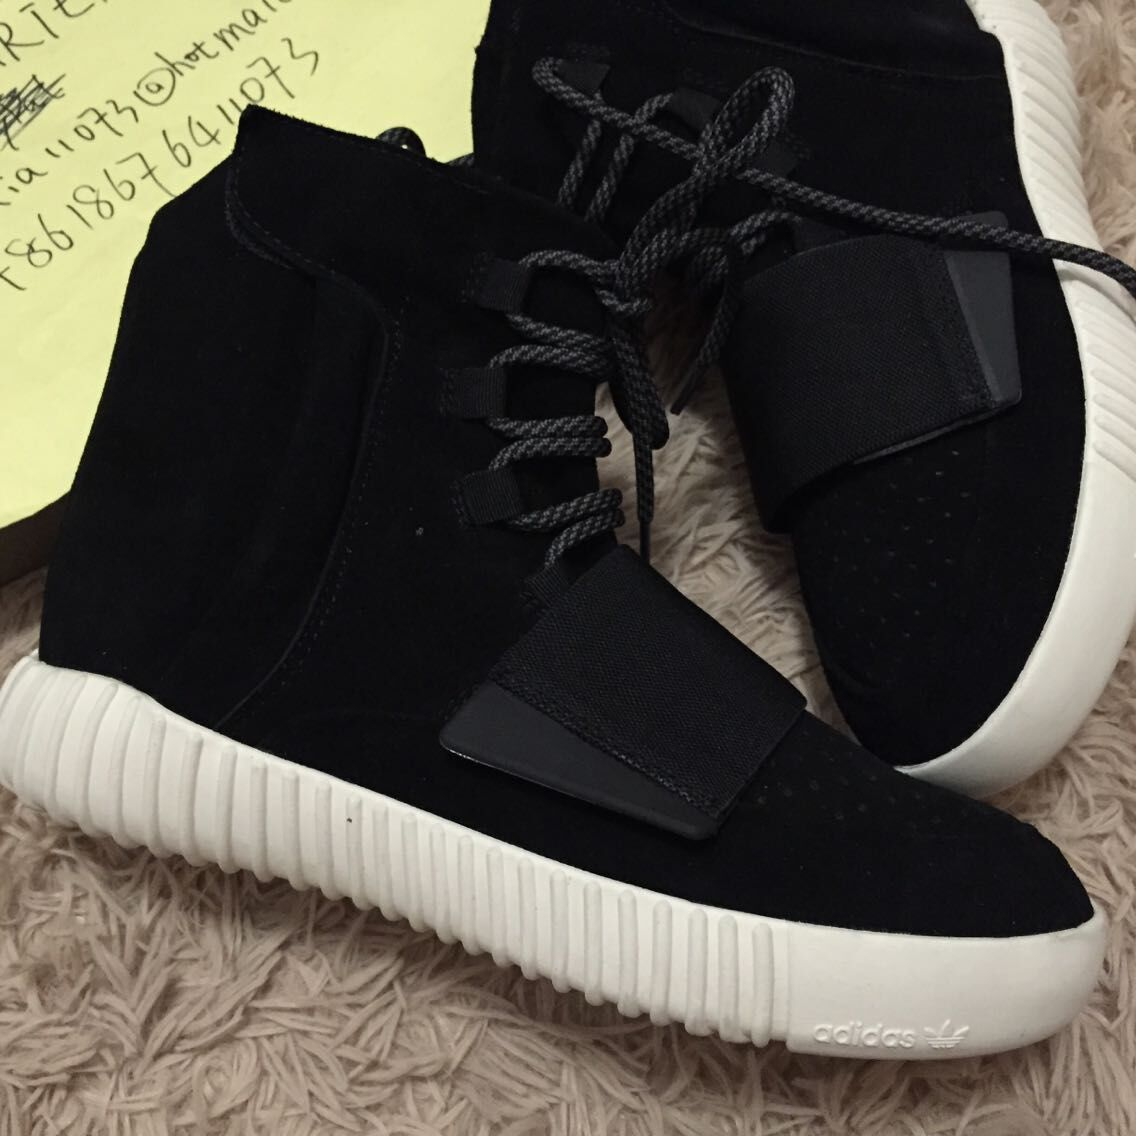 #Yeezy #750 #boost #adidas #yzy #kaynewest More info welcome to